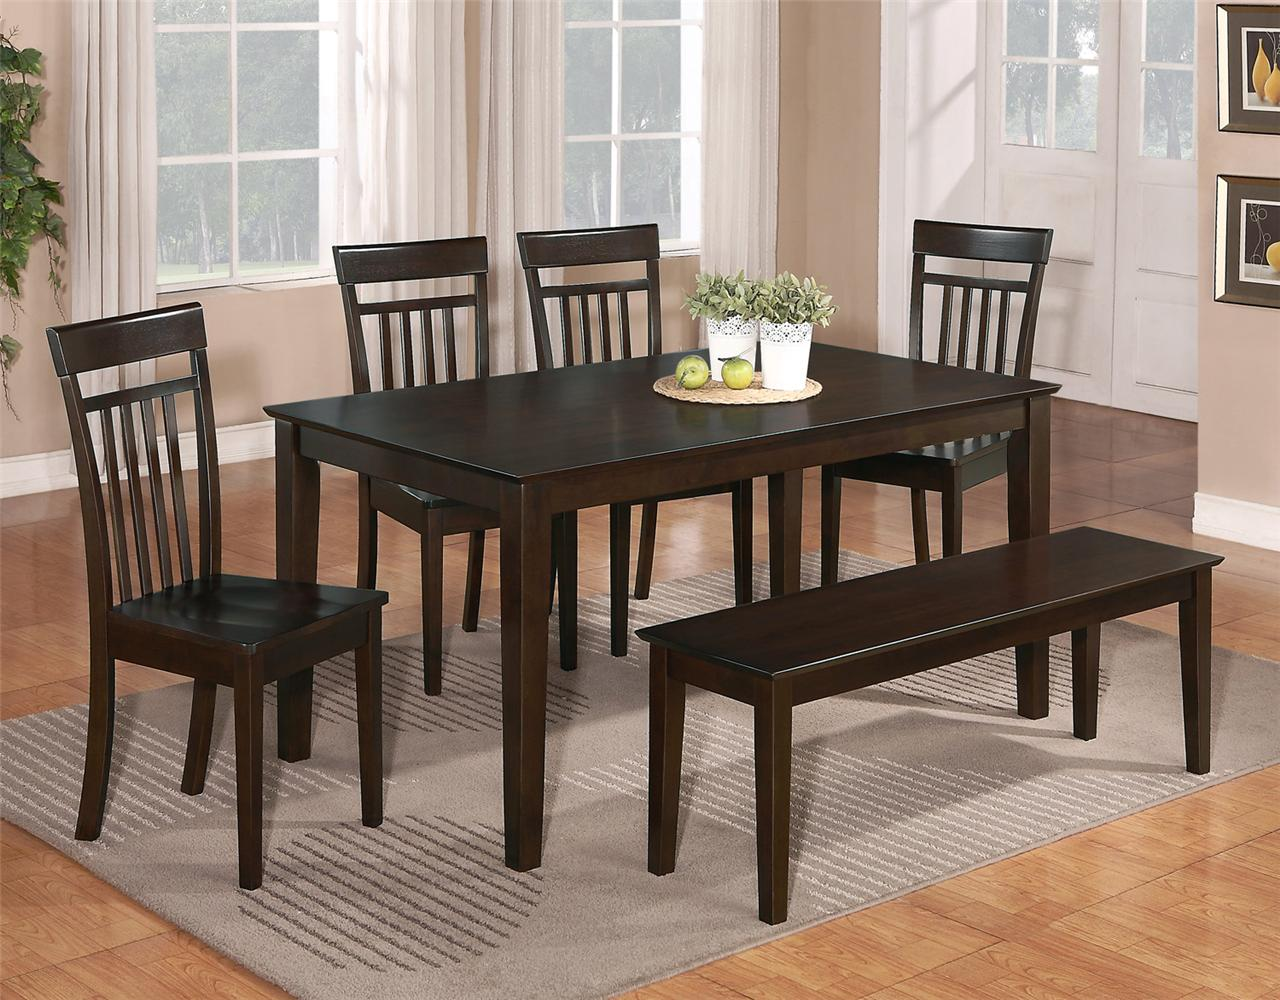 6 pc dinette kitchen dining room set table w 4 wood chair for Kitchen table with bench